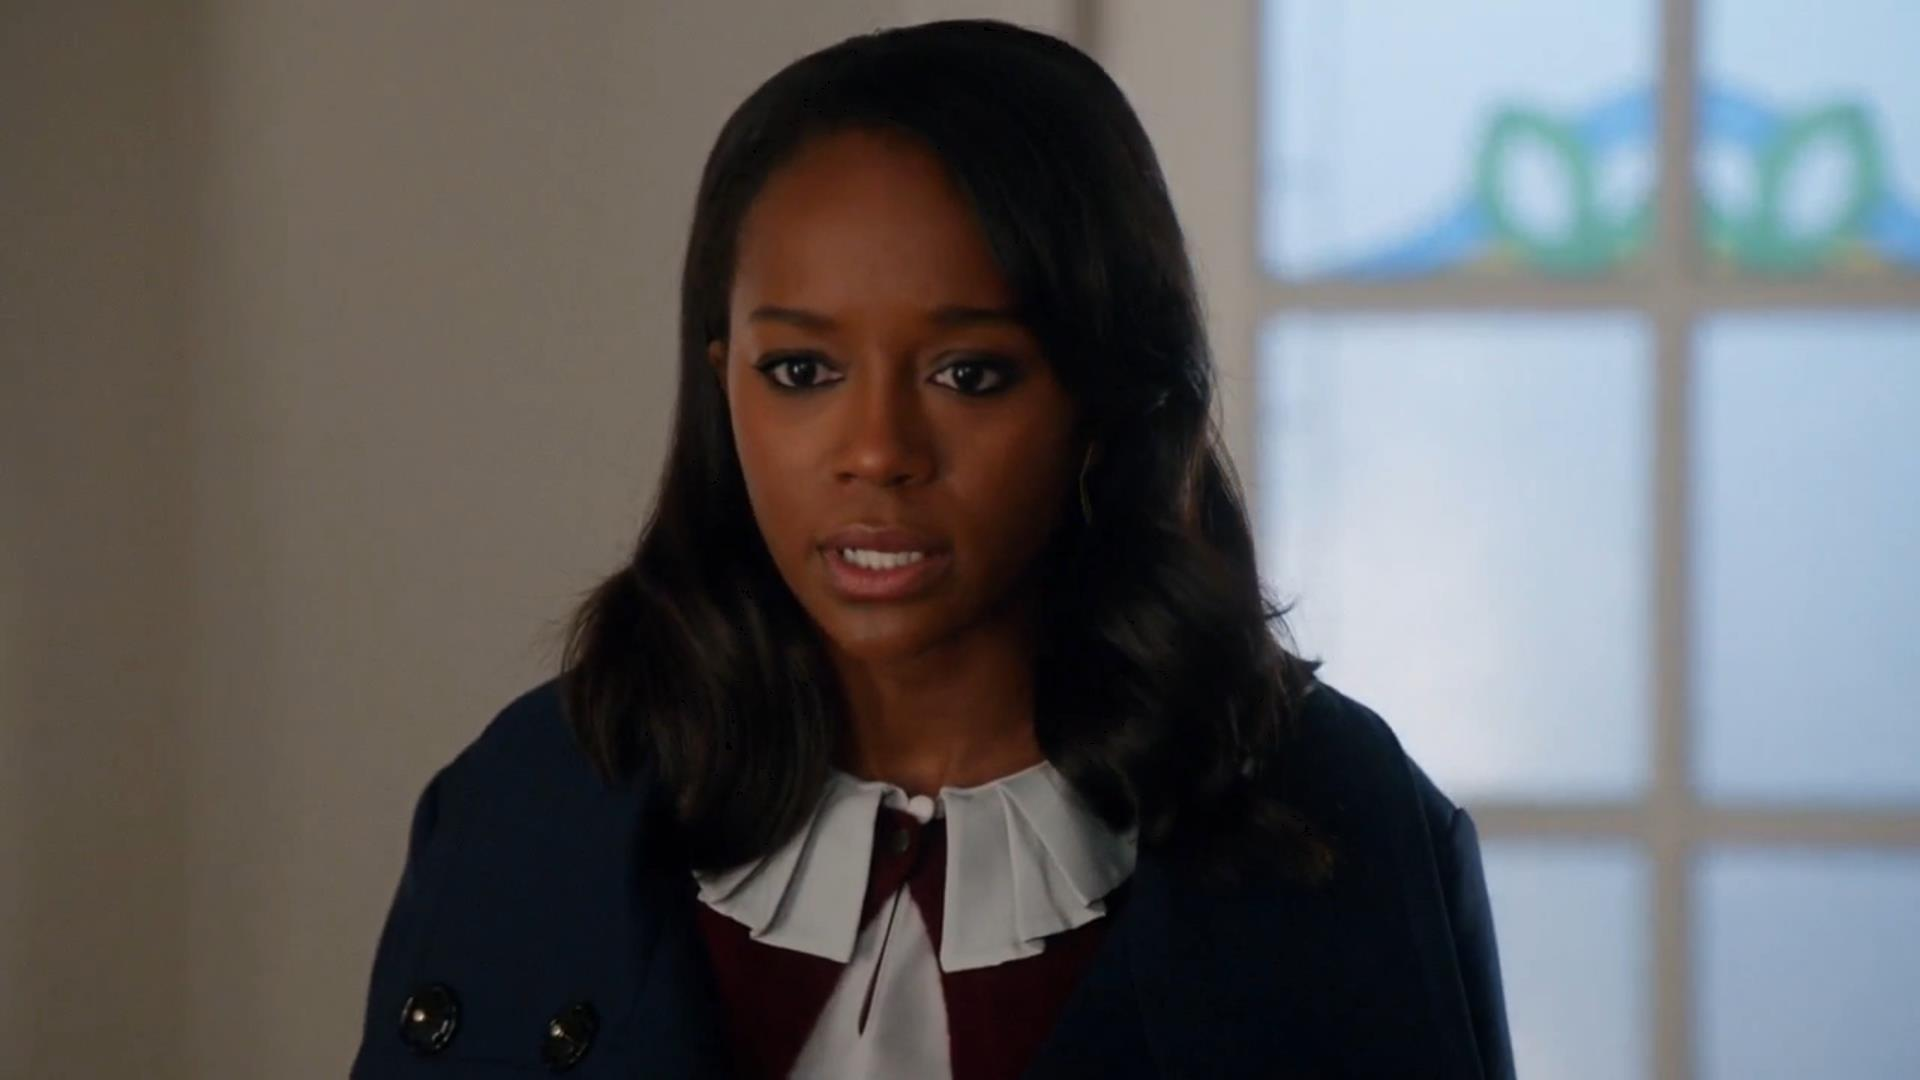 'How To Get Away With Murder' 3×13 'It's War' Captures